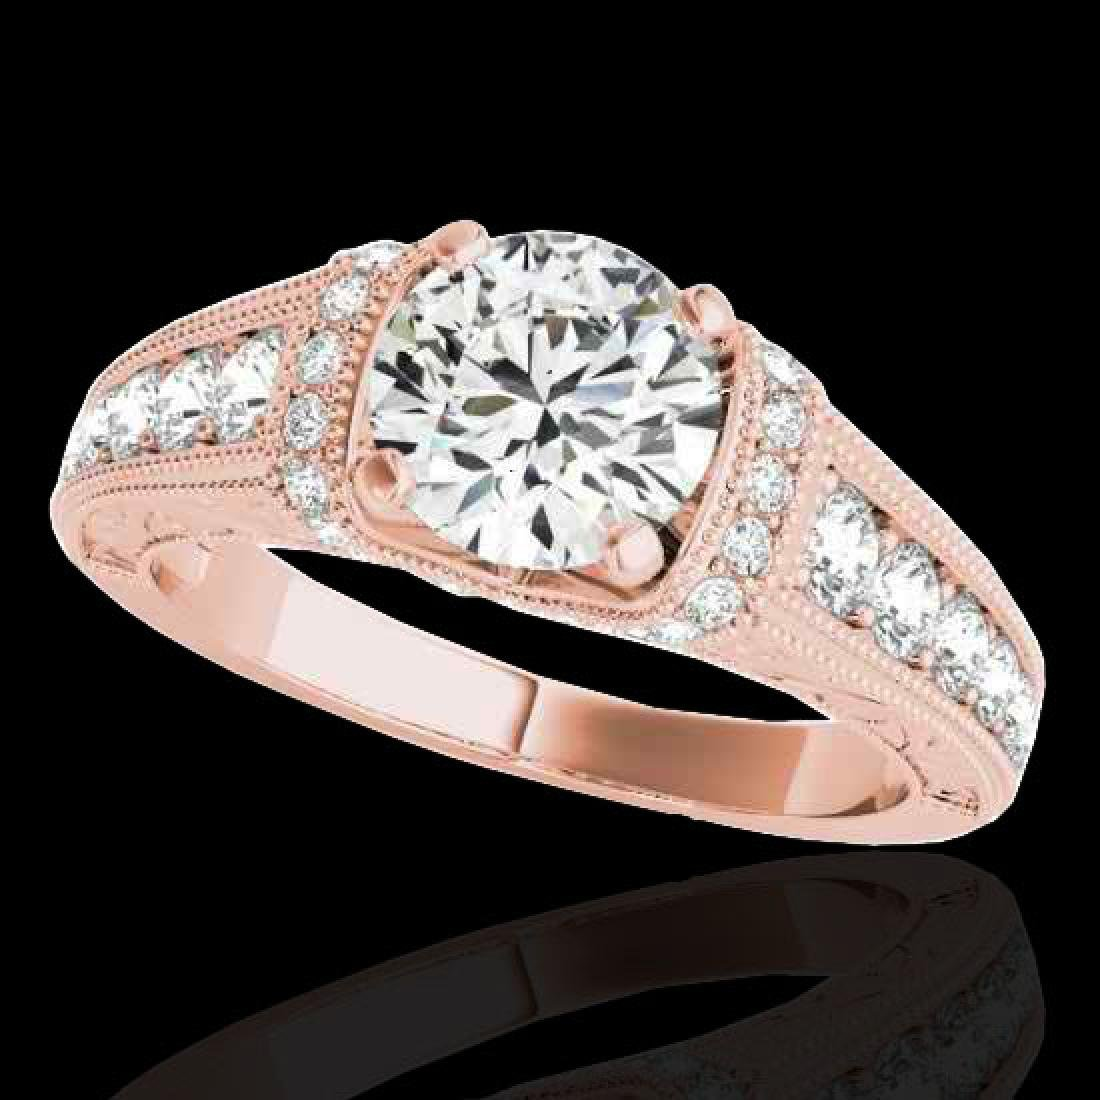 1.5 CTW H-SI/I Certified Diamond Solitaire Antique Ring